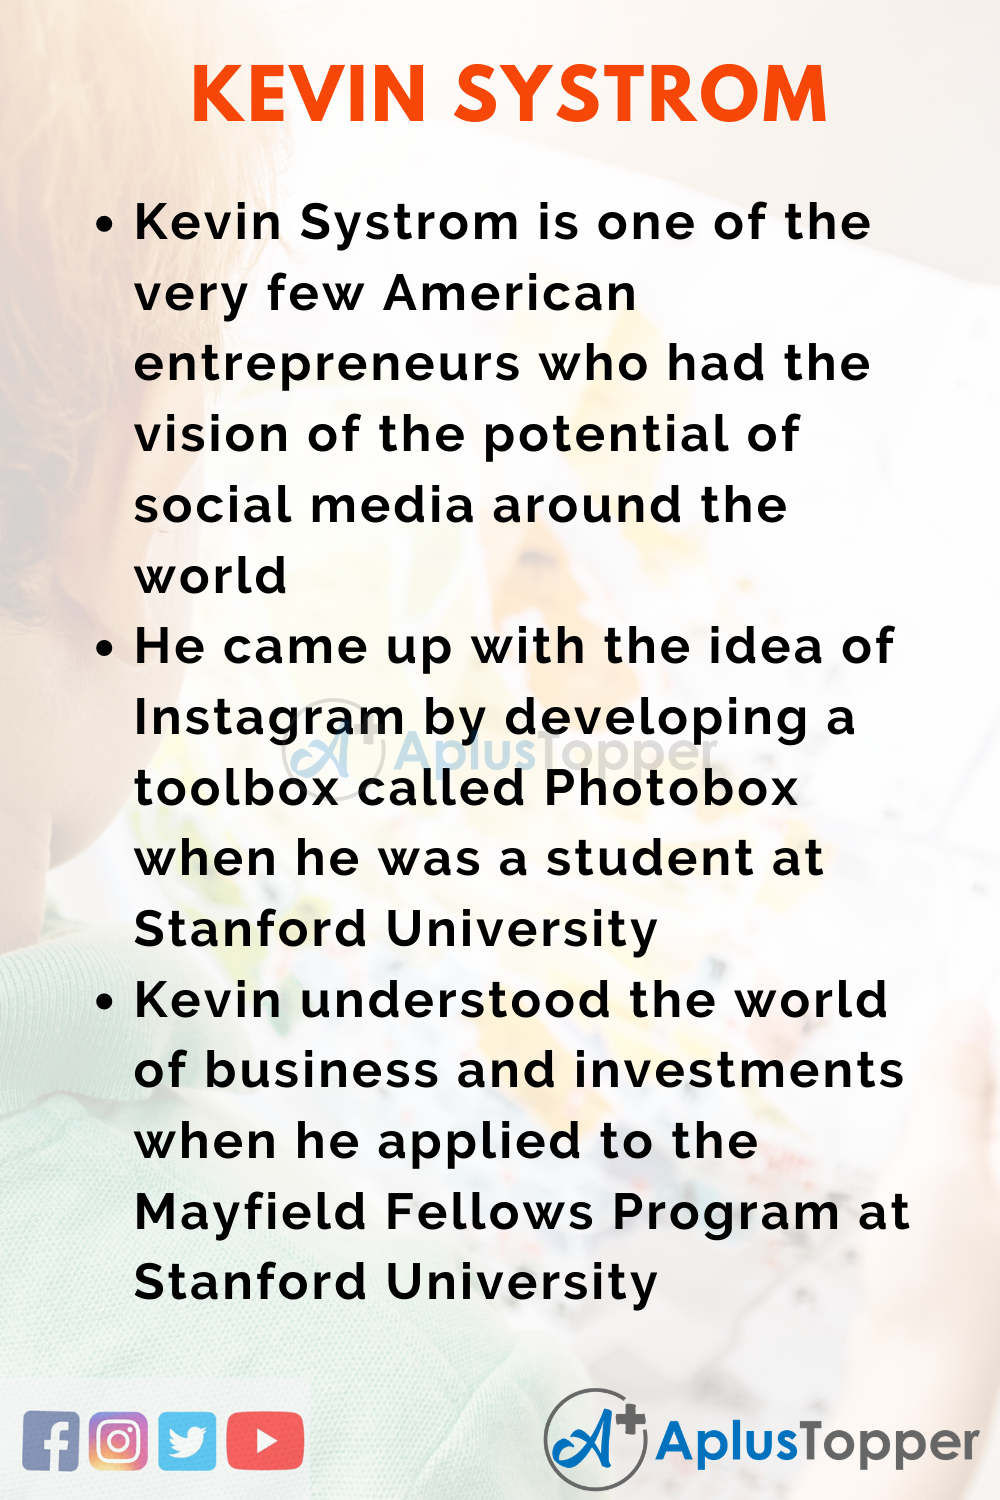 10 Lines on Kevin Systrom for Higher Class Students